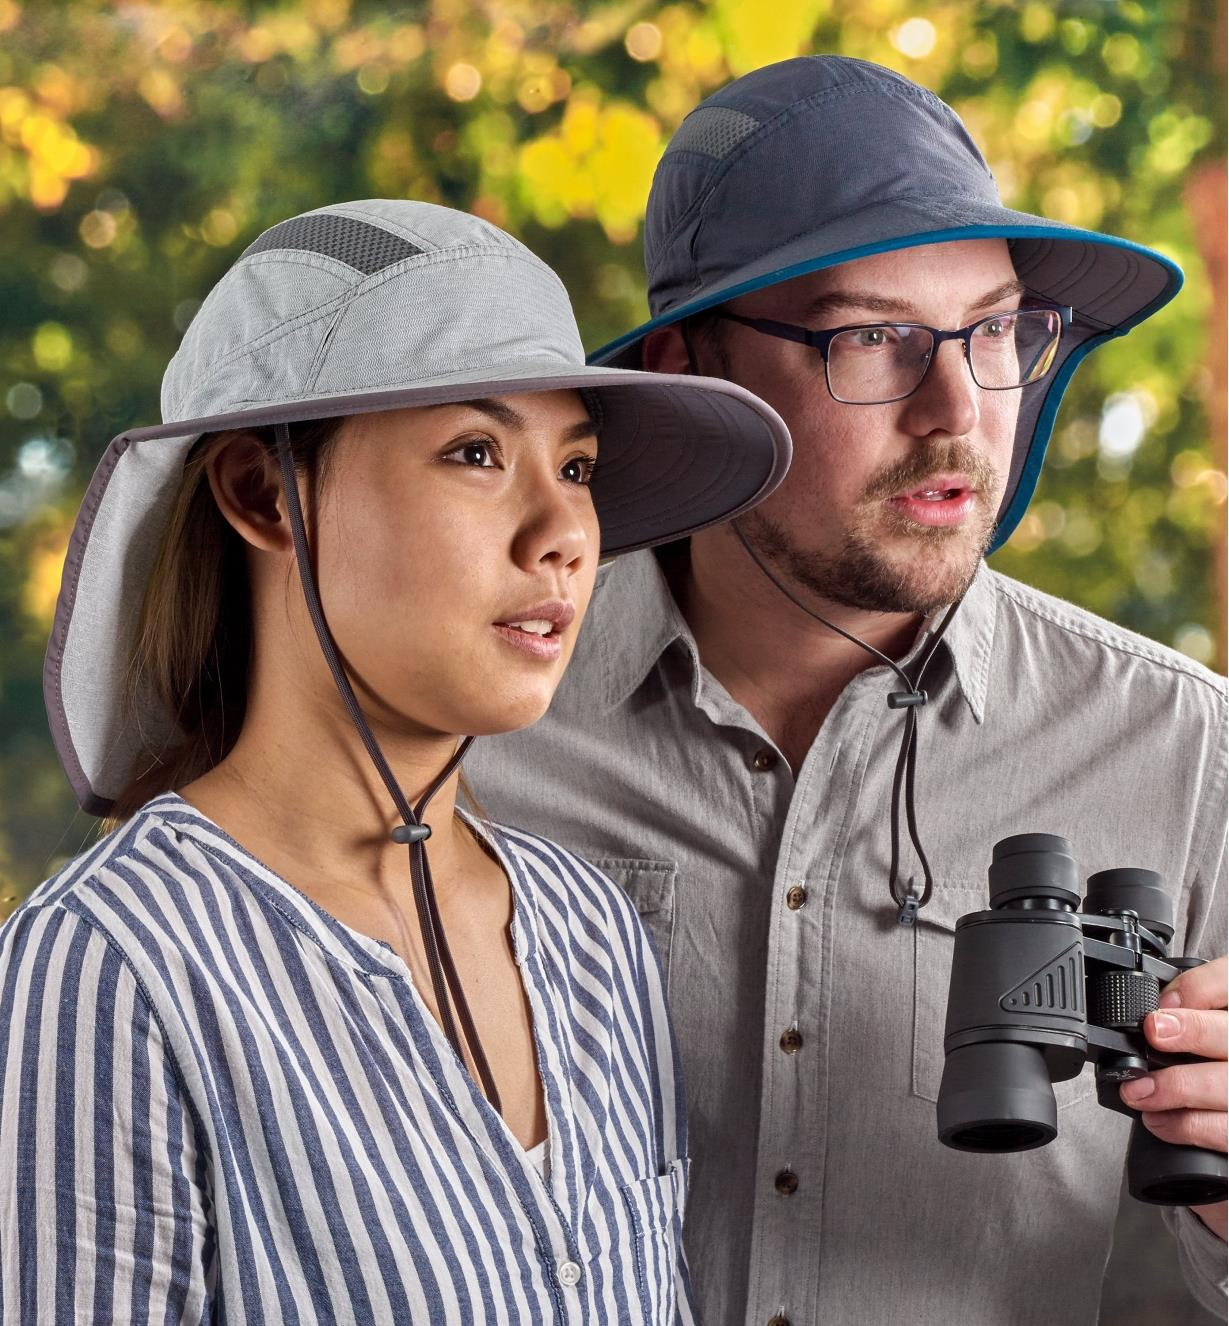 A woman and man wearing adventure sun hats while birdwatching